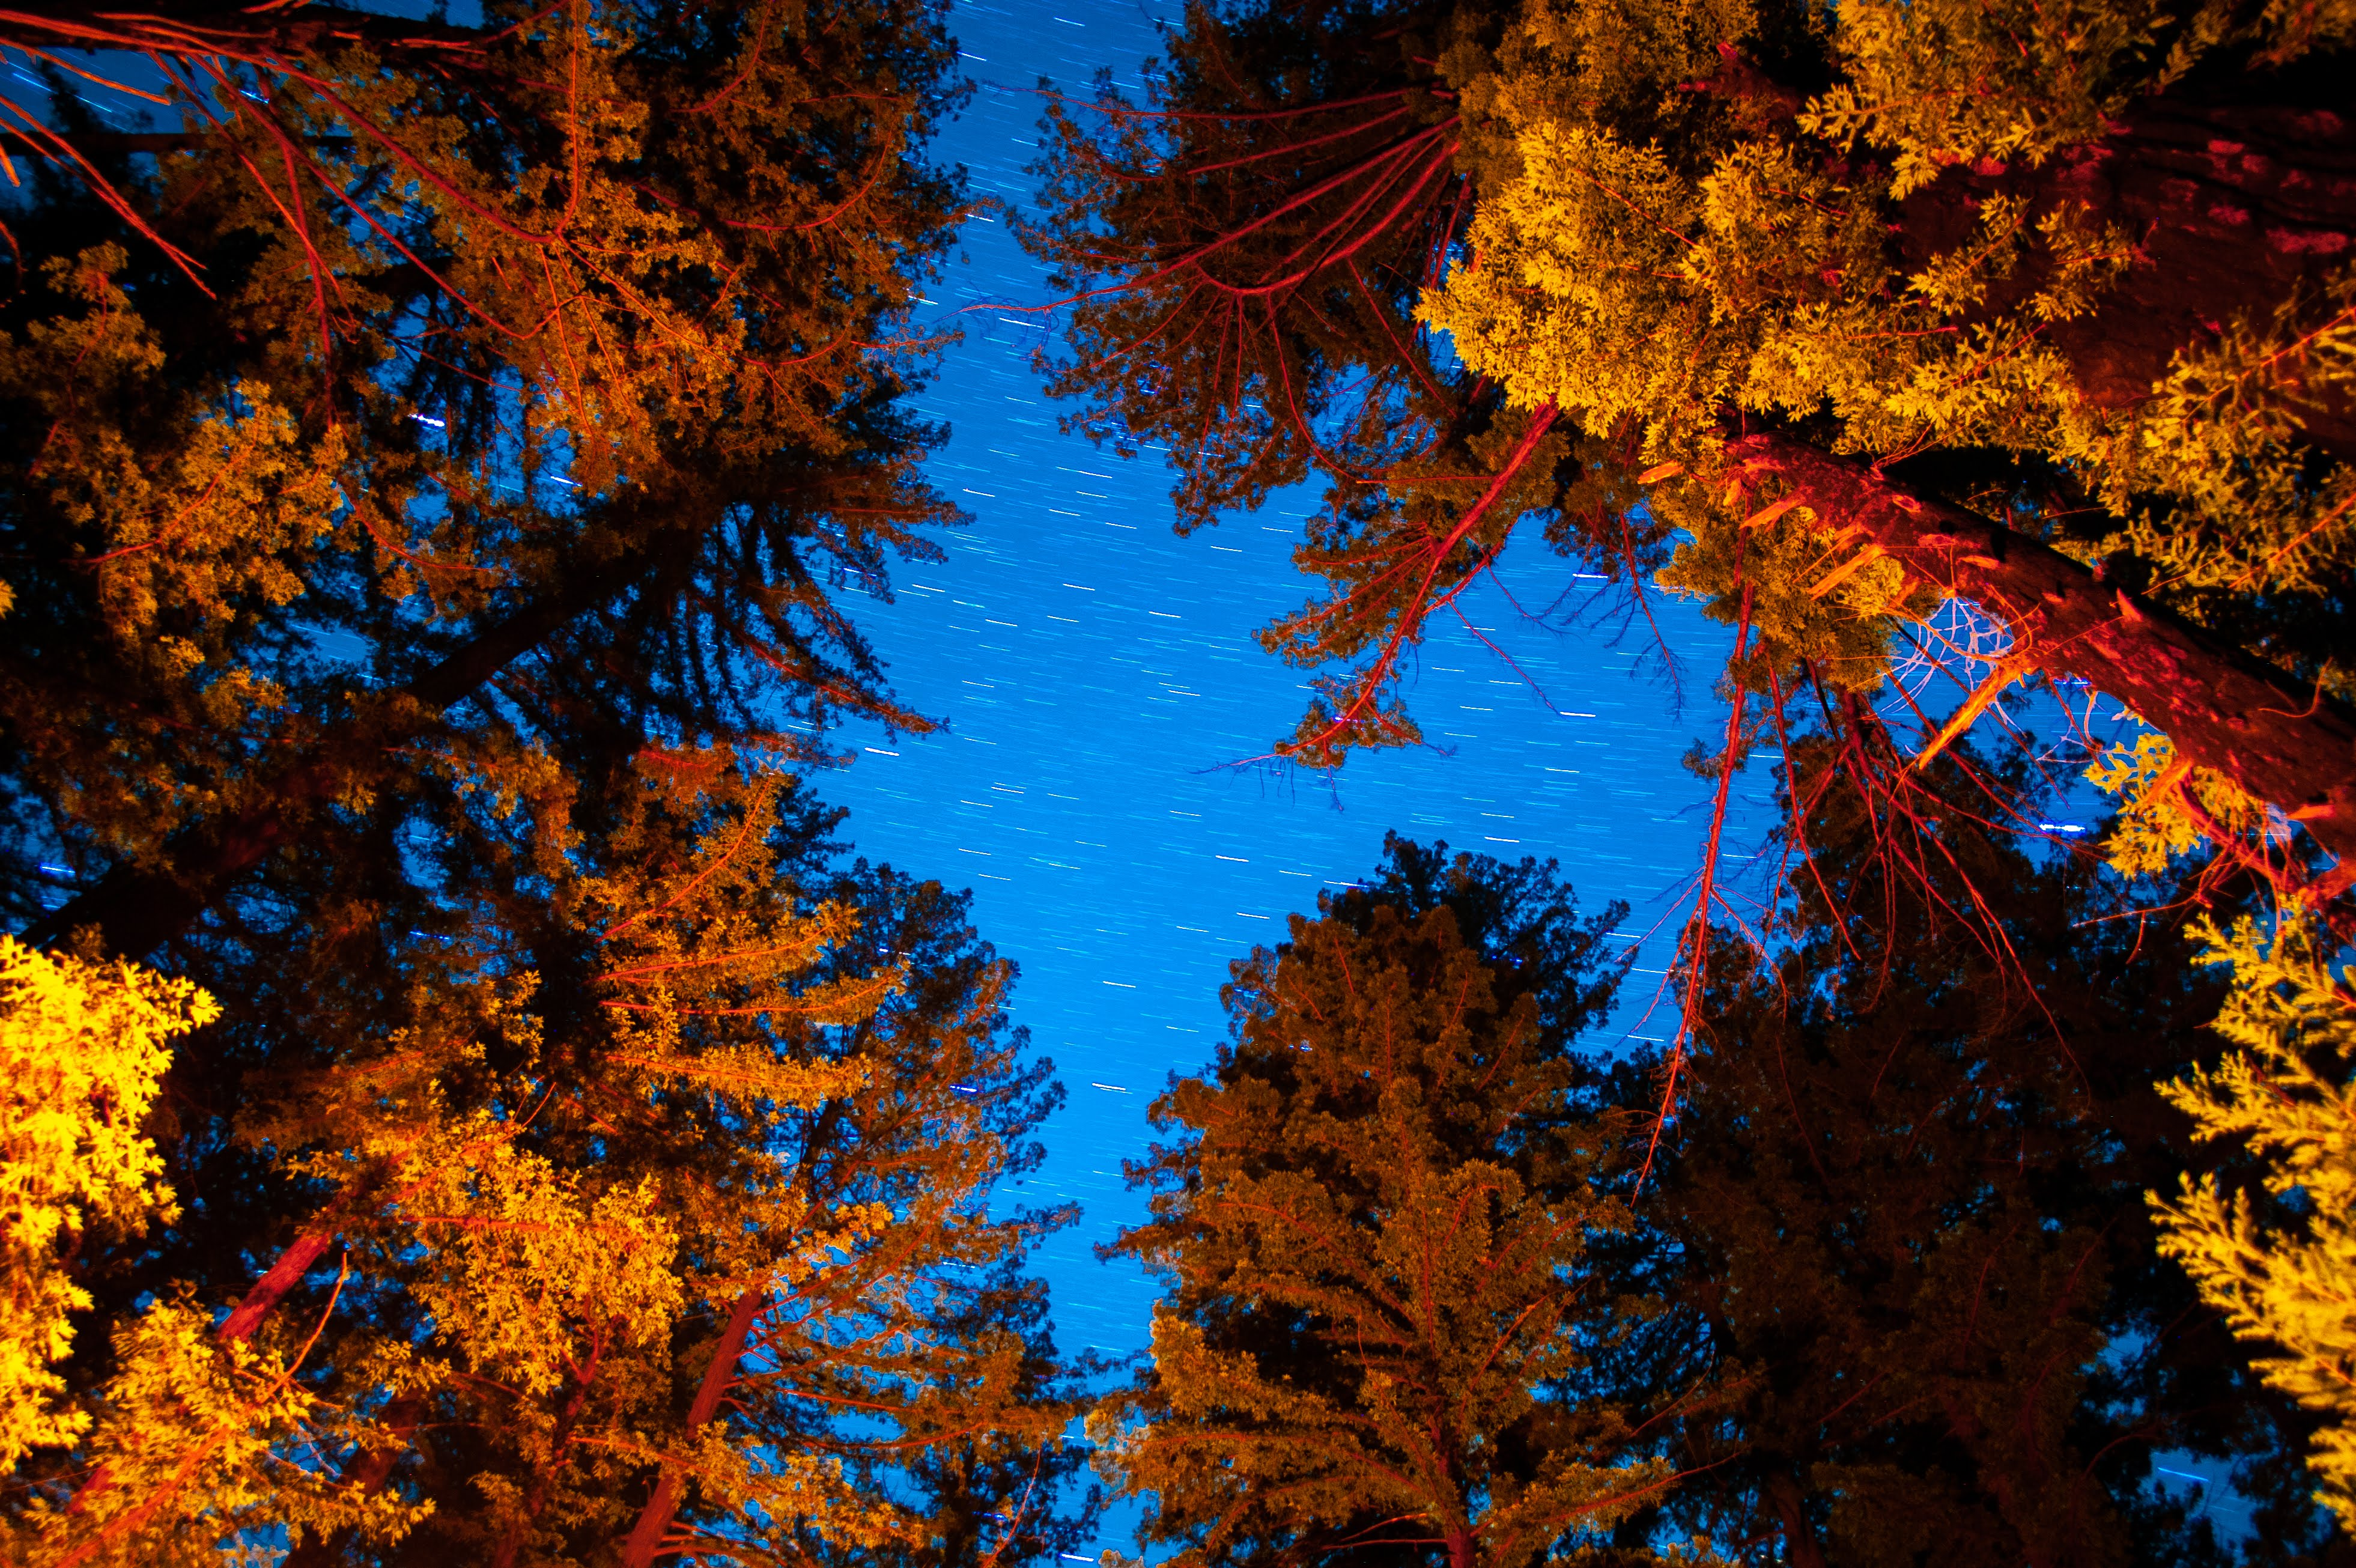 Trees lit by campfire under a starry night sky